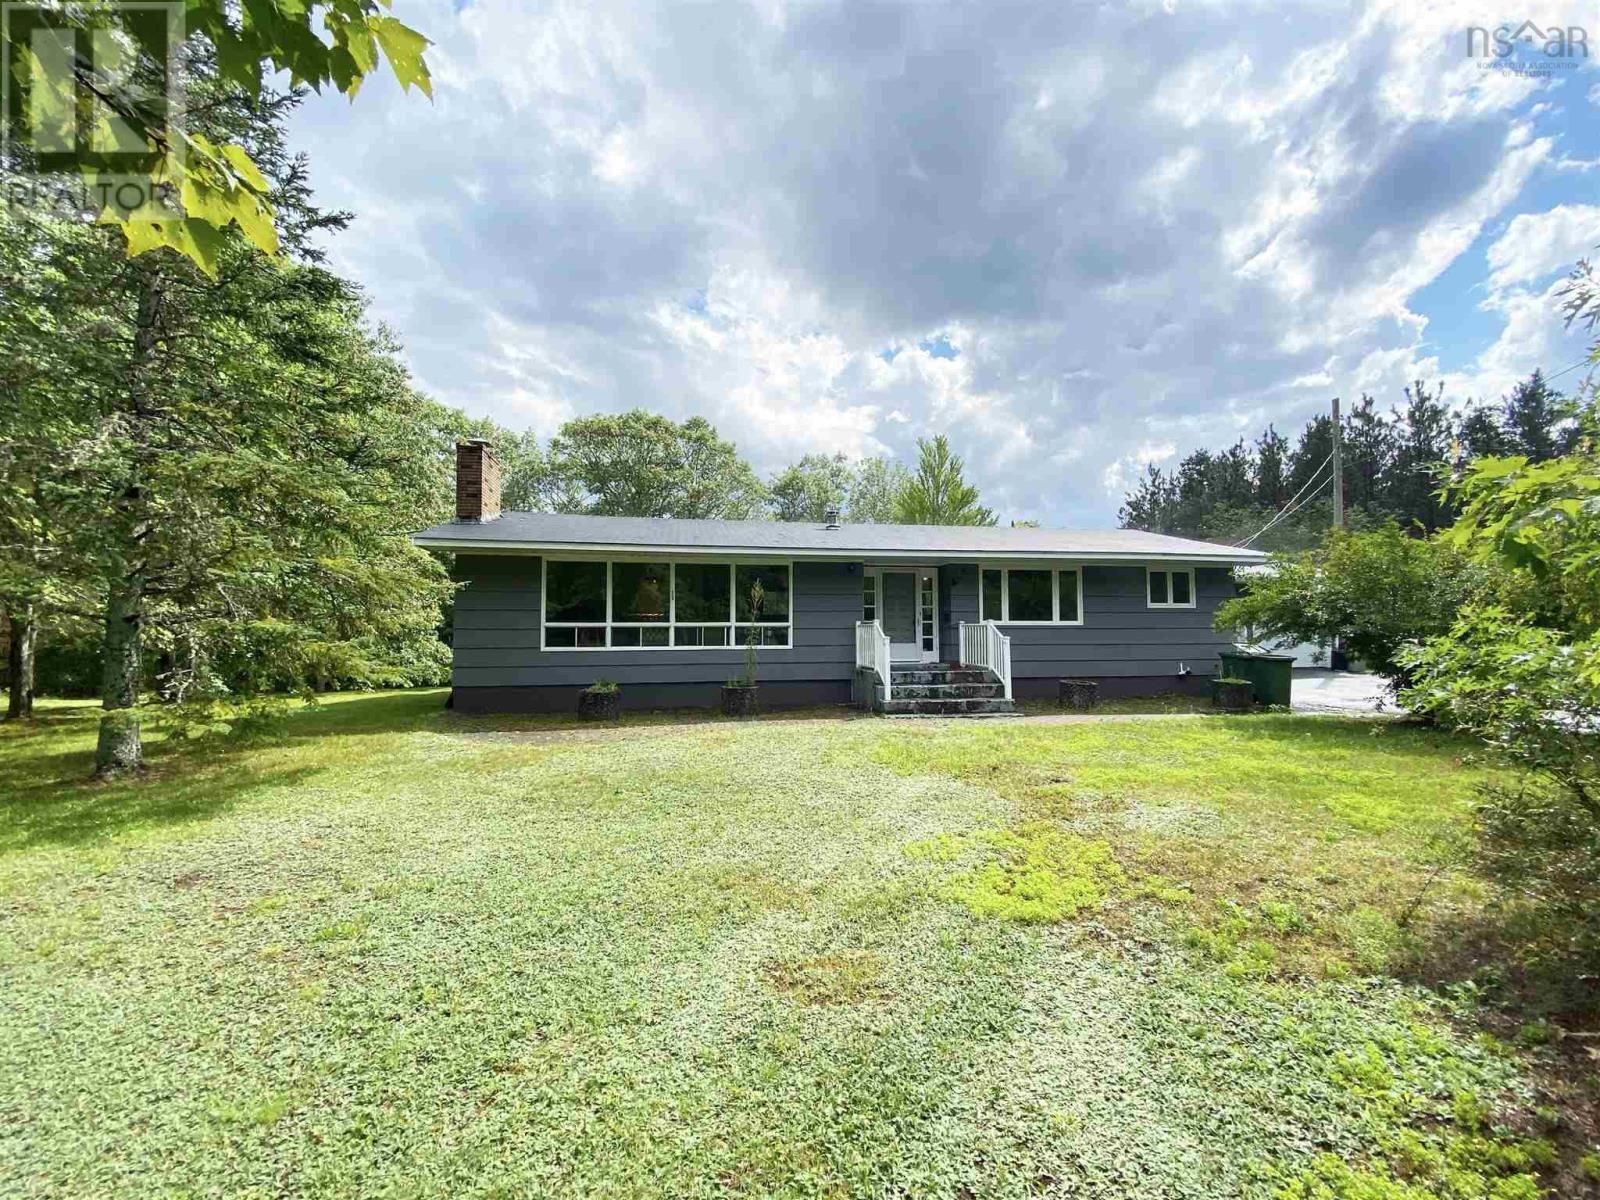 Main Photo: 1649 Highway 10 in Cookville: House for sale : MLS®# 202122499